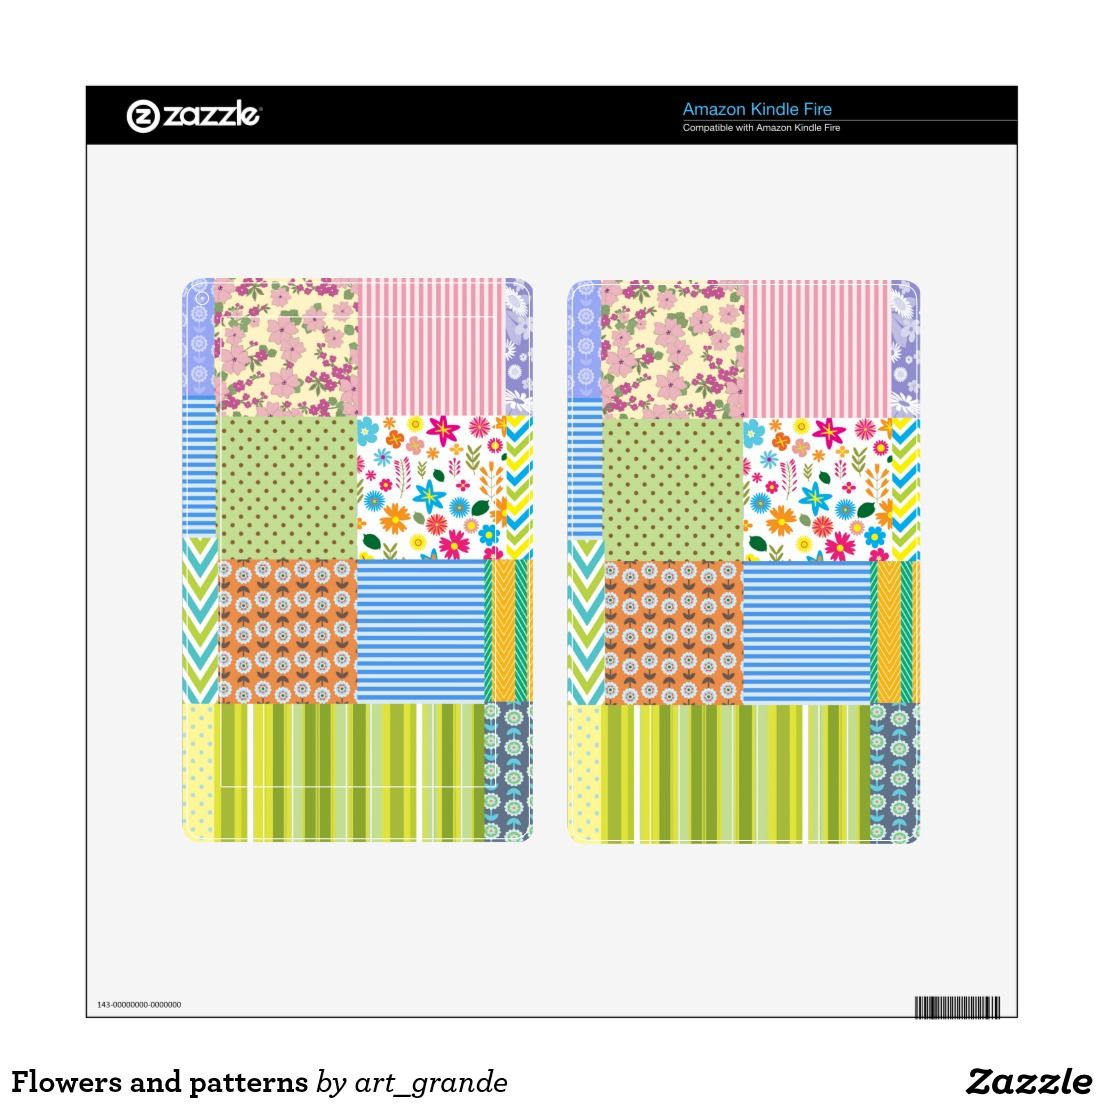 Flowers and patterns decal for kindle fire